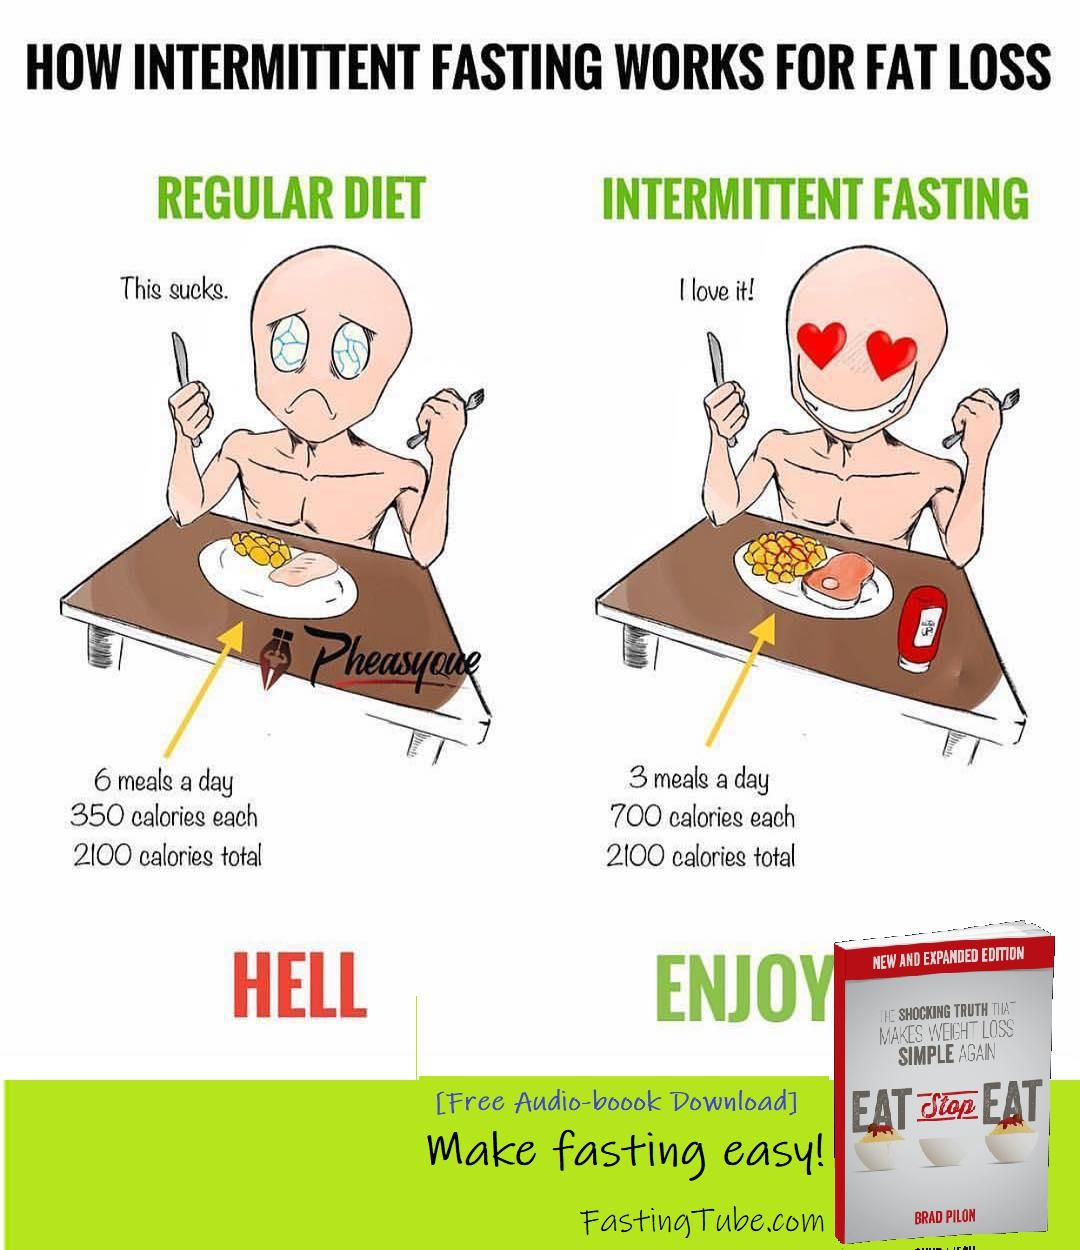 This Summarizes Intermittent Fasting Well For Me Agree It S Not A Diet It S Perfect For Busy People Intermittent Fasting Micro Nutrients Audio Books